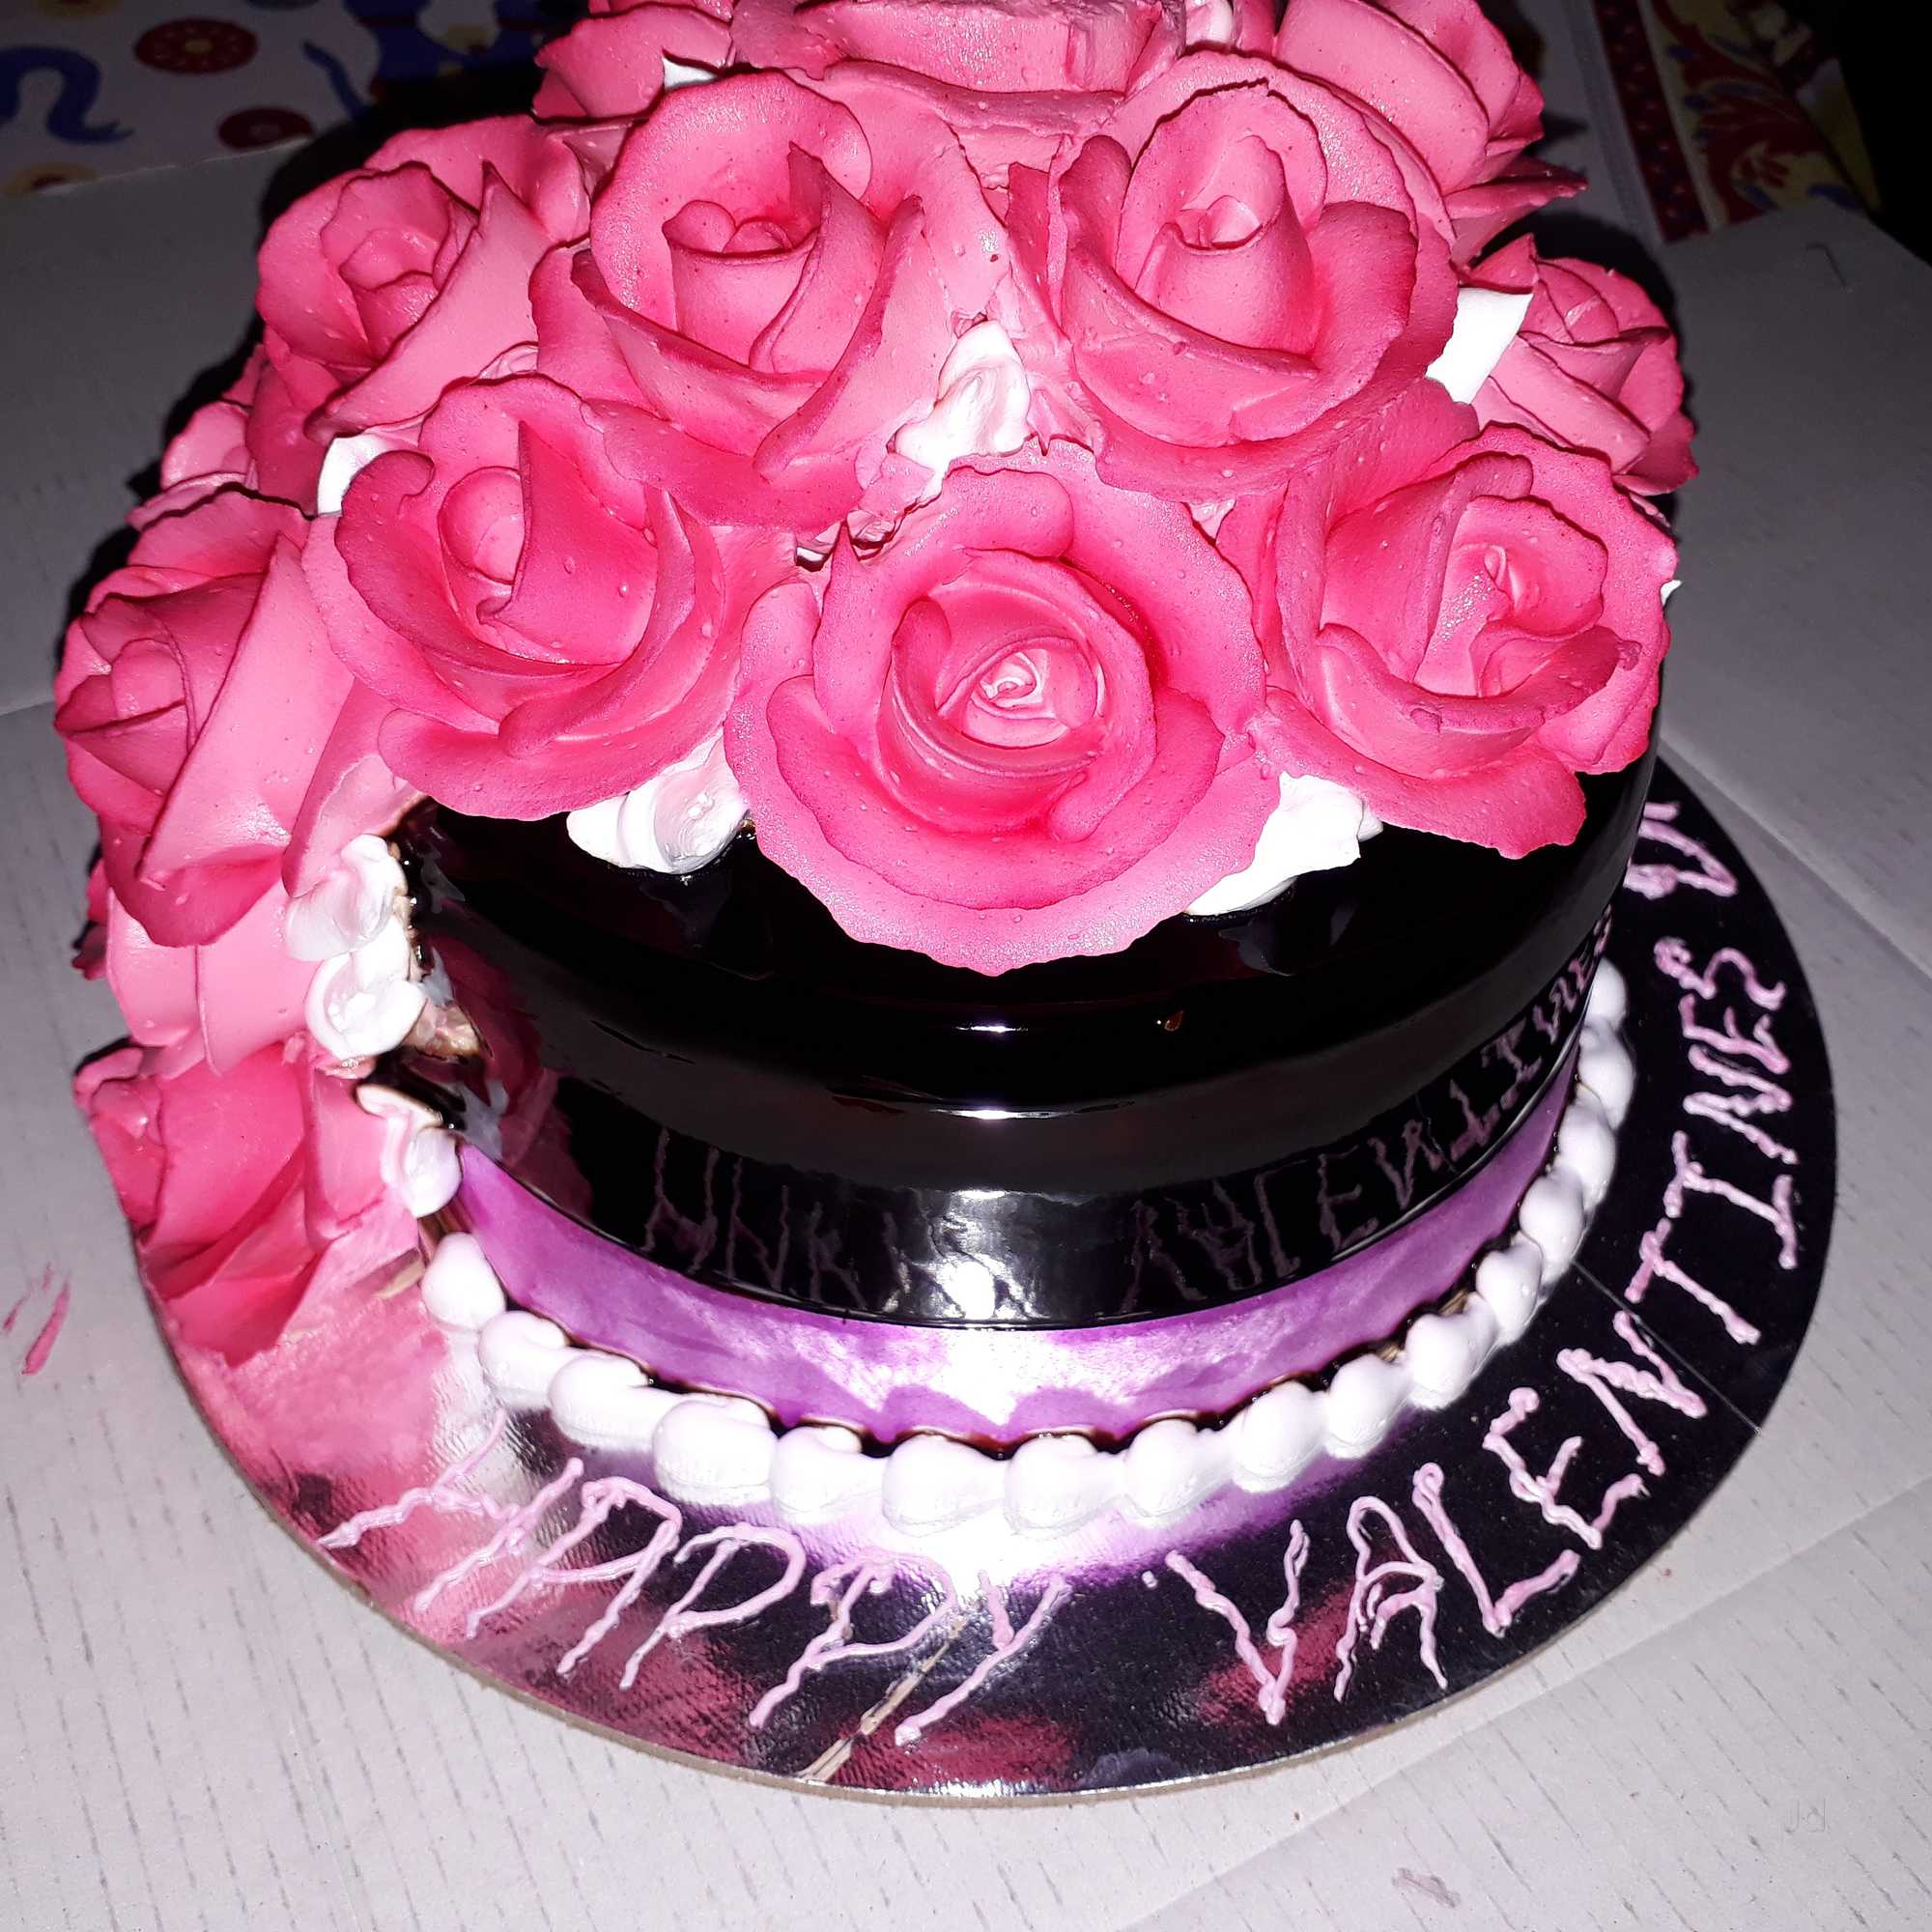 Cake Delivery Services In Kanpur